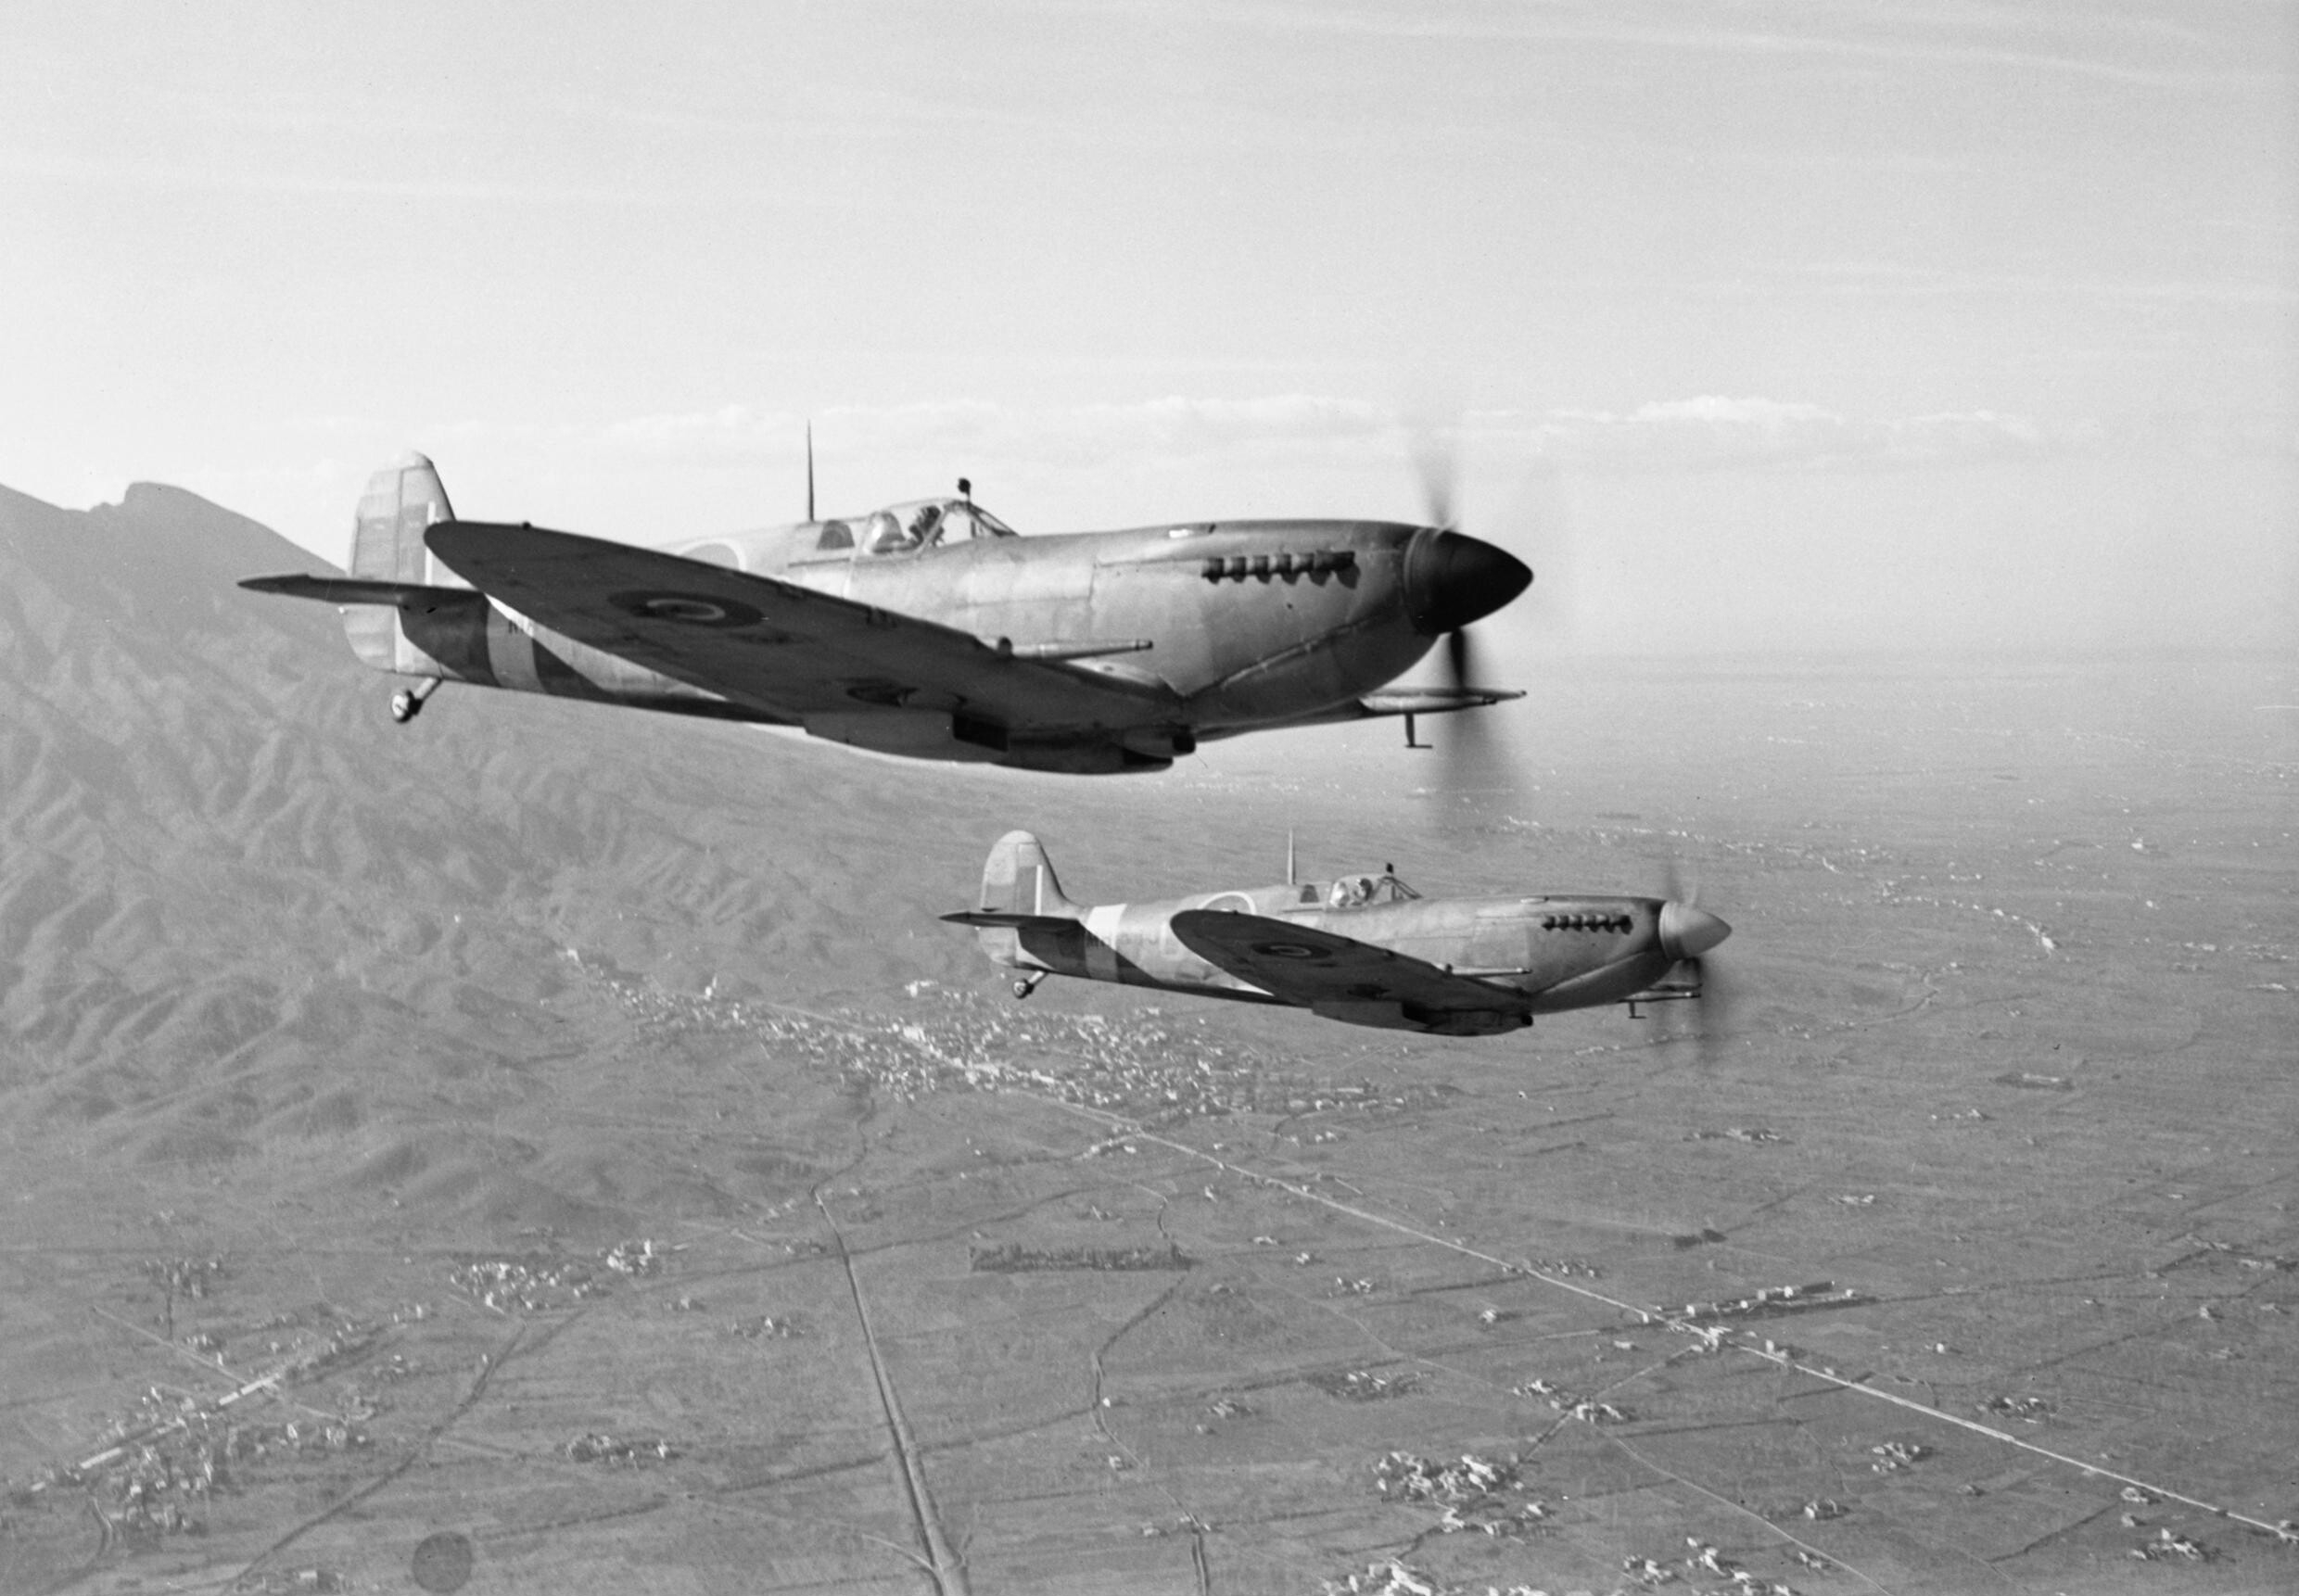 Supermarine_Spitfire_Mk_IXs_of_No._241_Squadron_RAF_return_to_their_base_at_Madna,_south-east_of_Campomarino,_Italy,_after_a_weather_reconnaissance_sortie_over_the_Anzio_beachhead,_29_January_1944._CNA2499.jpg